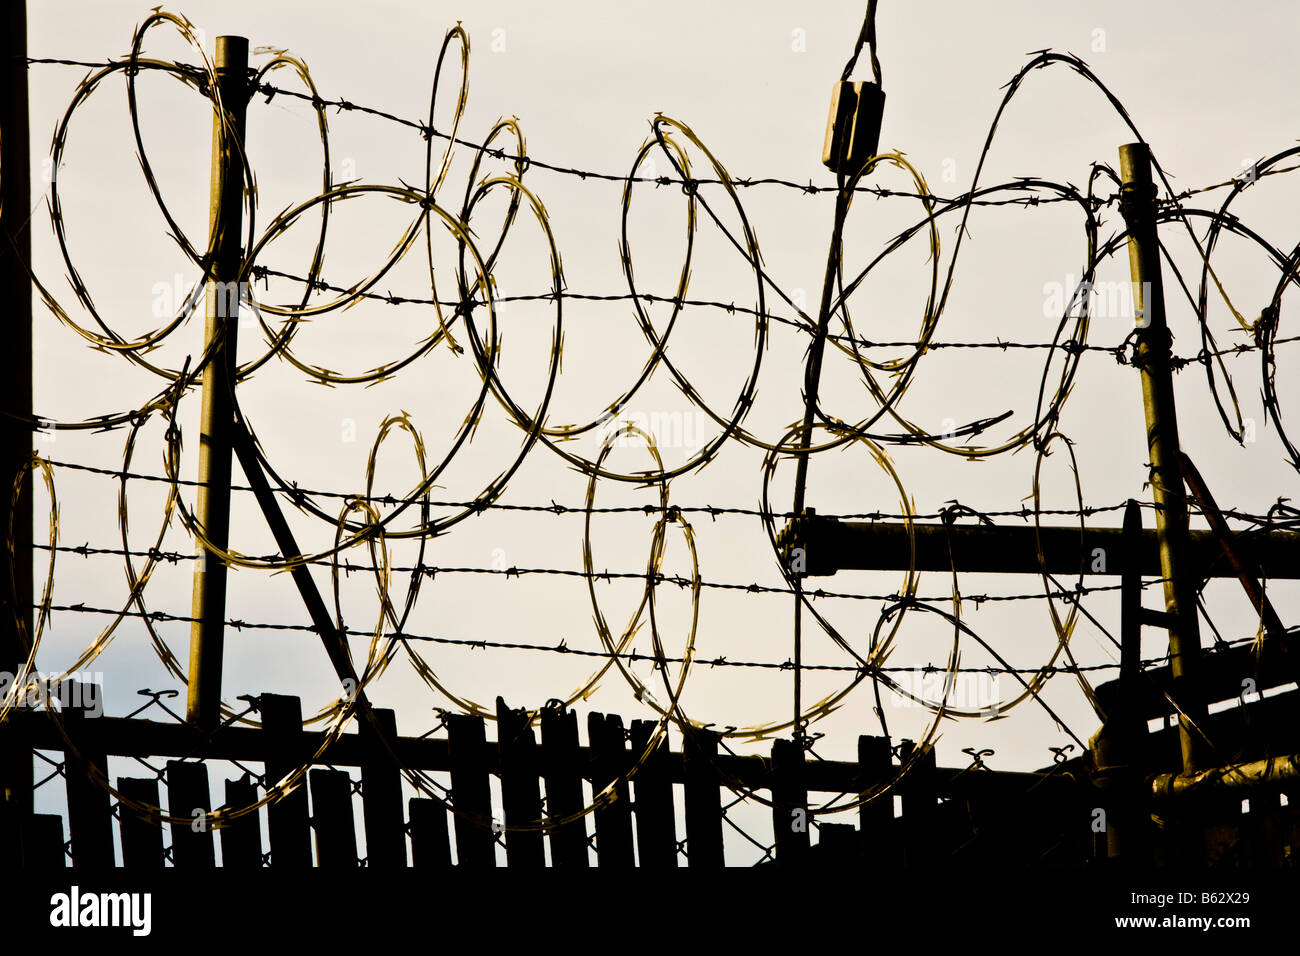 Barbed Wire Fence Los Angeles California United States of America - Stock Image